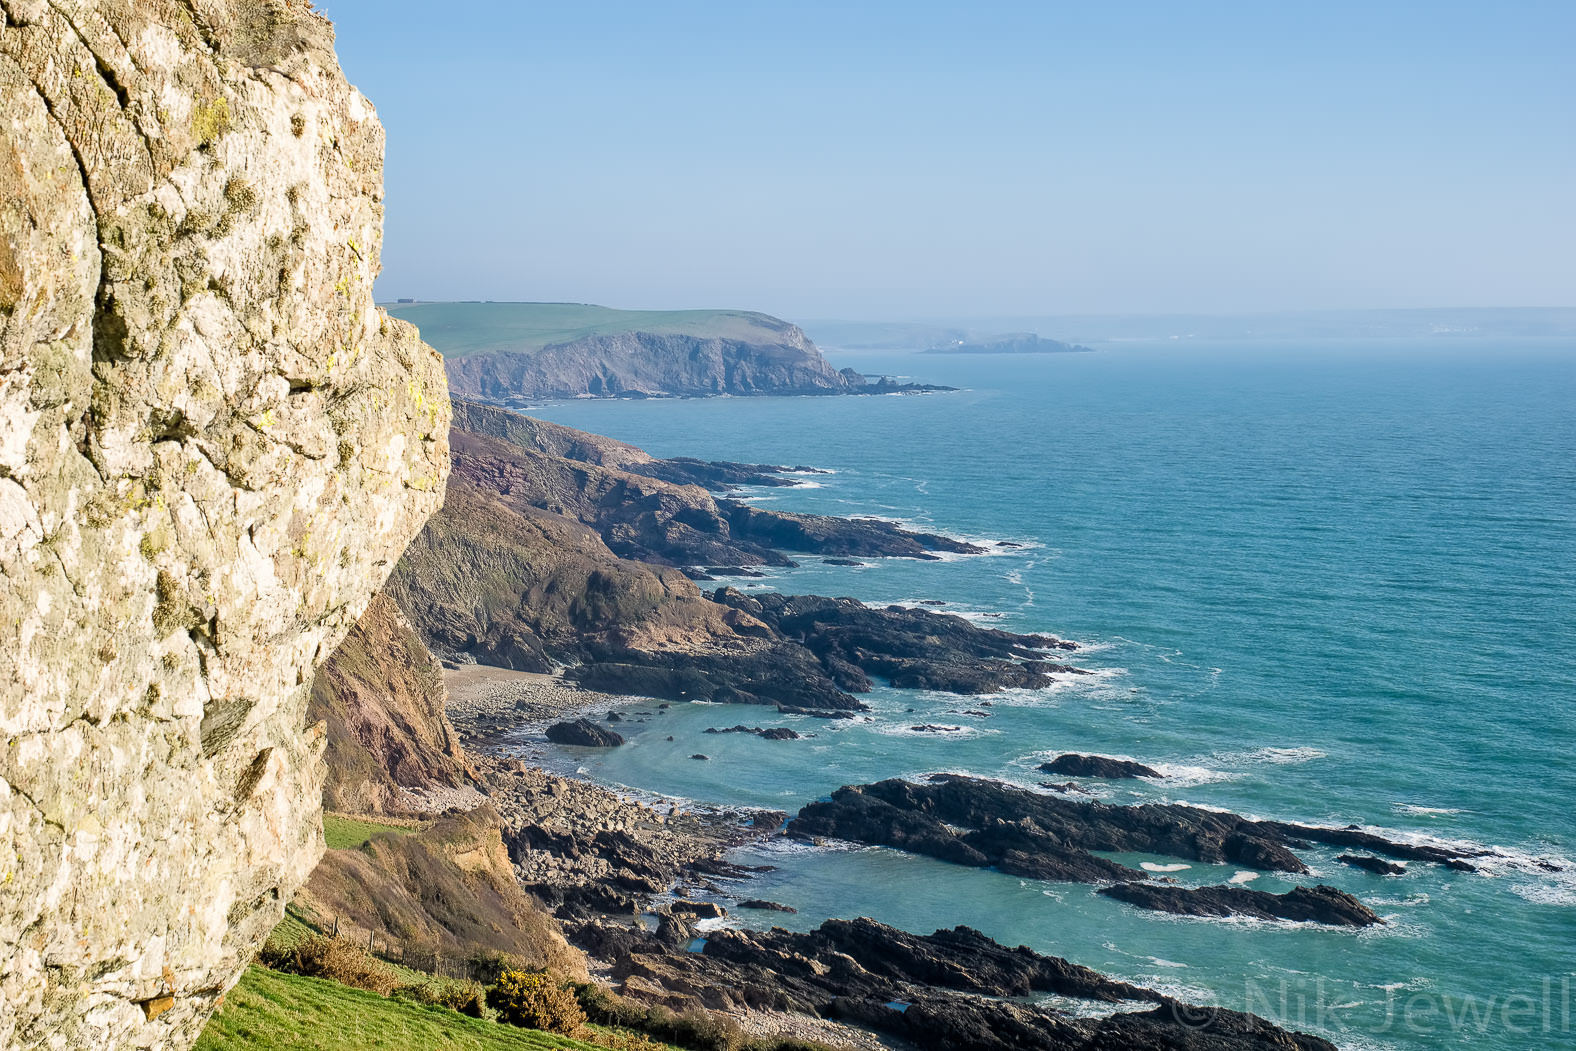 Looking East towards Burgh Island from St Anchorite's Rock in the South Hams of Devon.